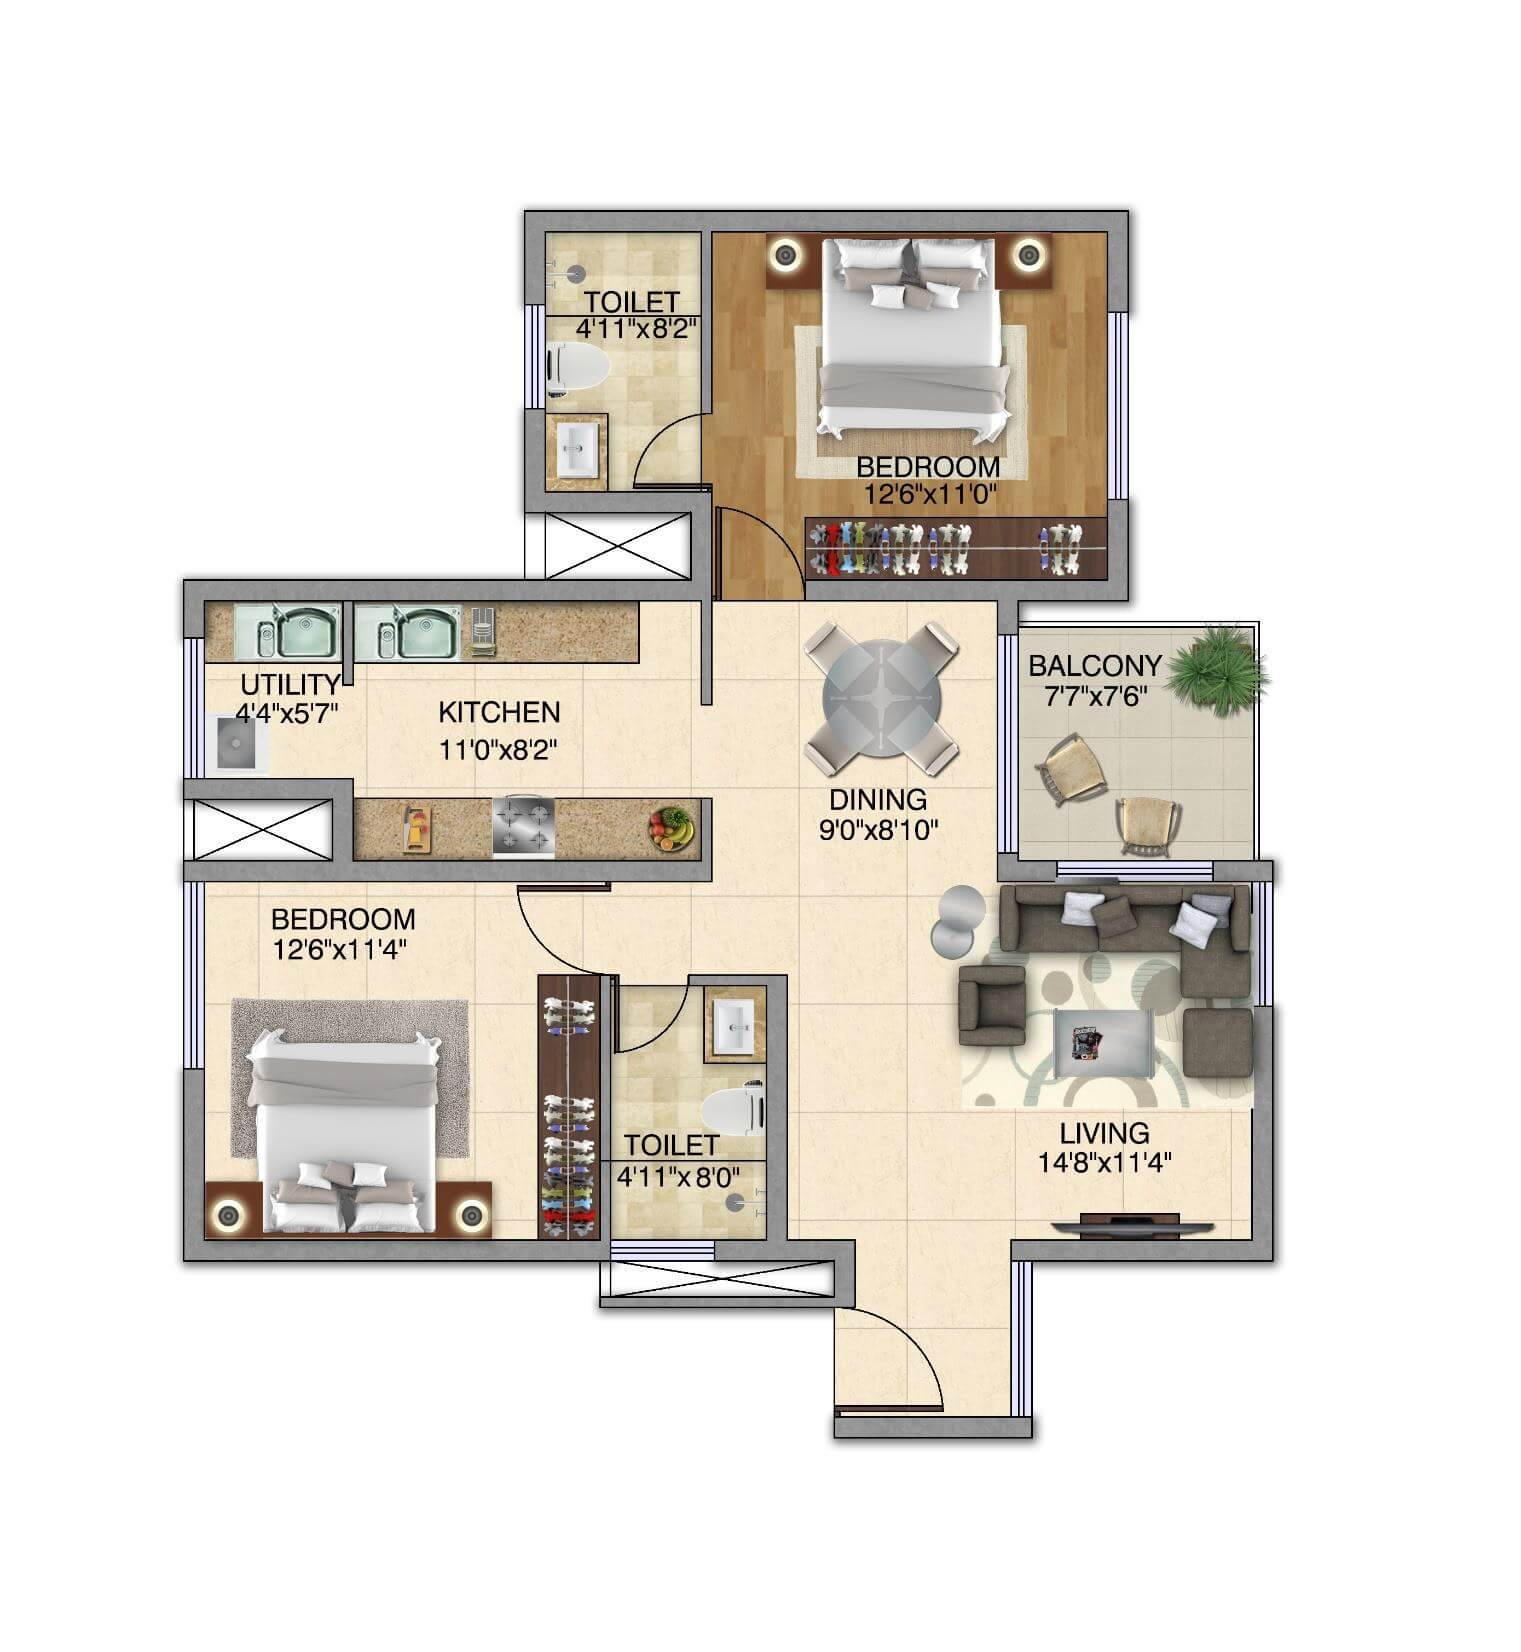 kolte patil itowers exente apartment 2bhk 1225sqft 1